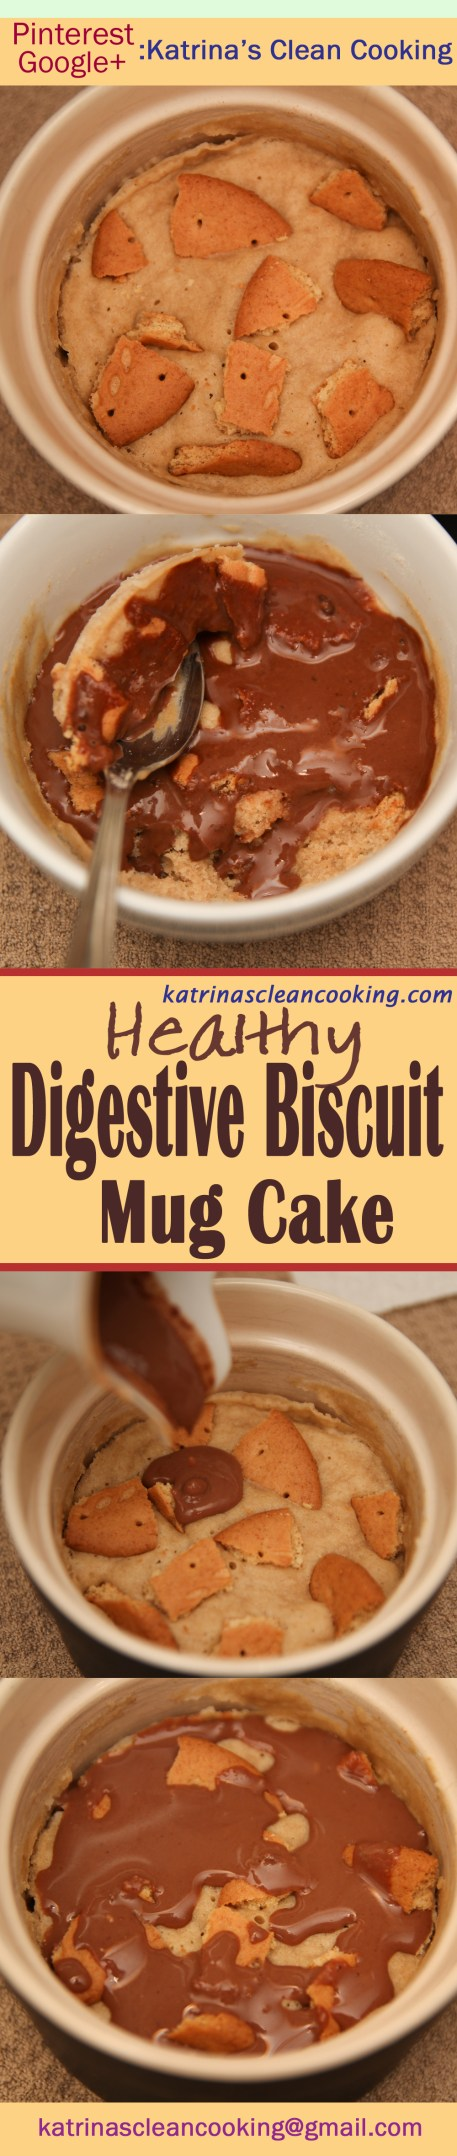 Healthy Digestive Biscuit Mug cake #Healthy #MugCake #5ingredients